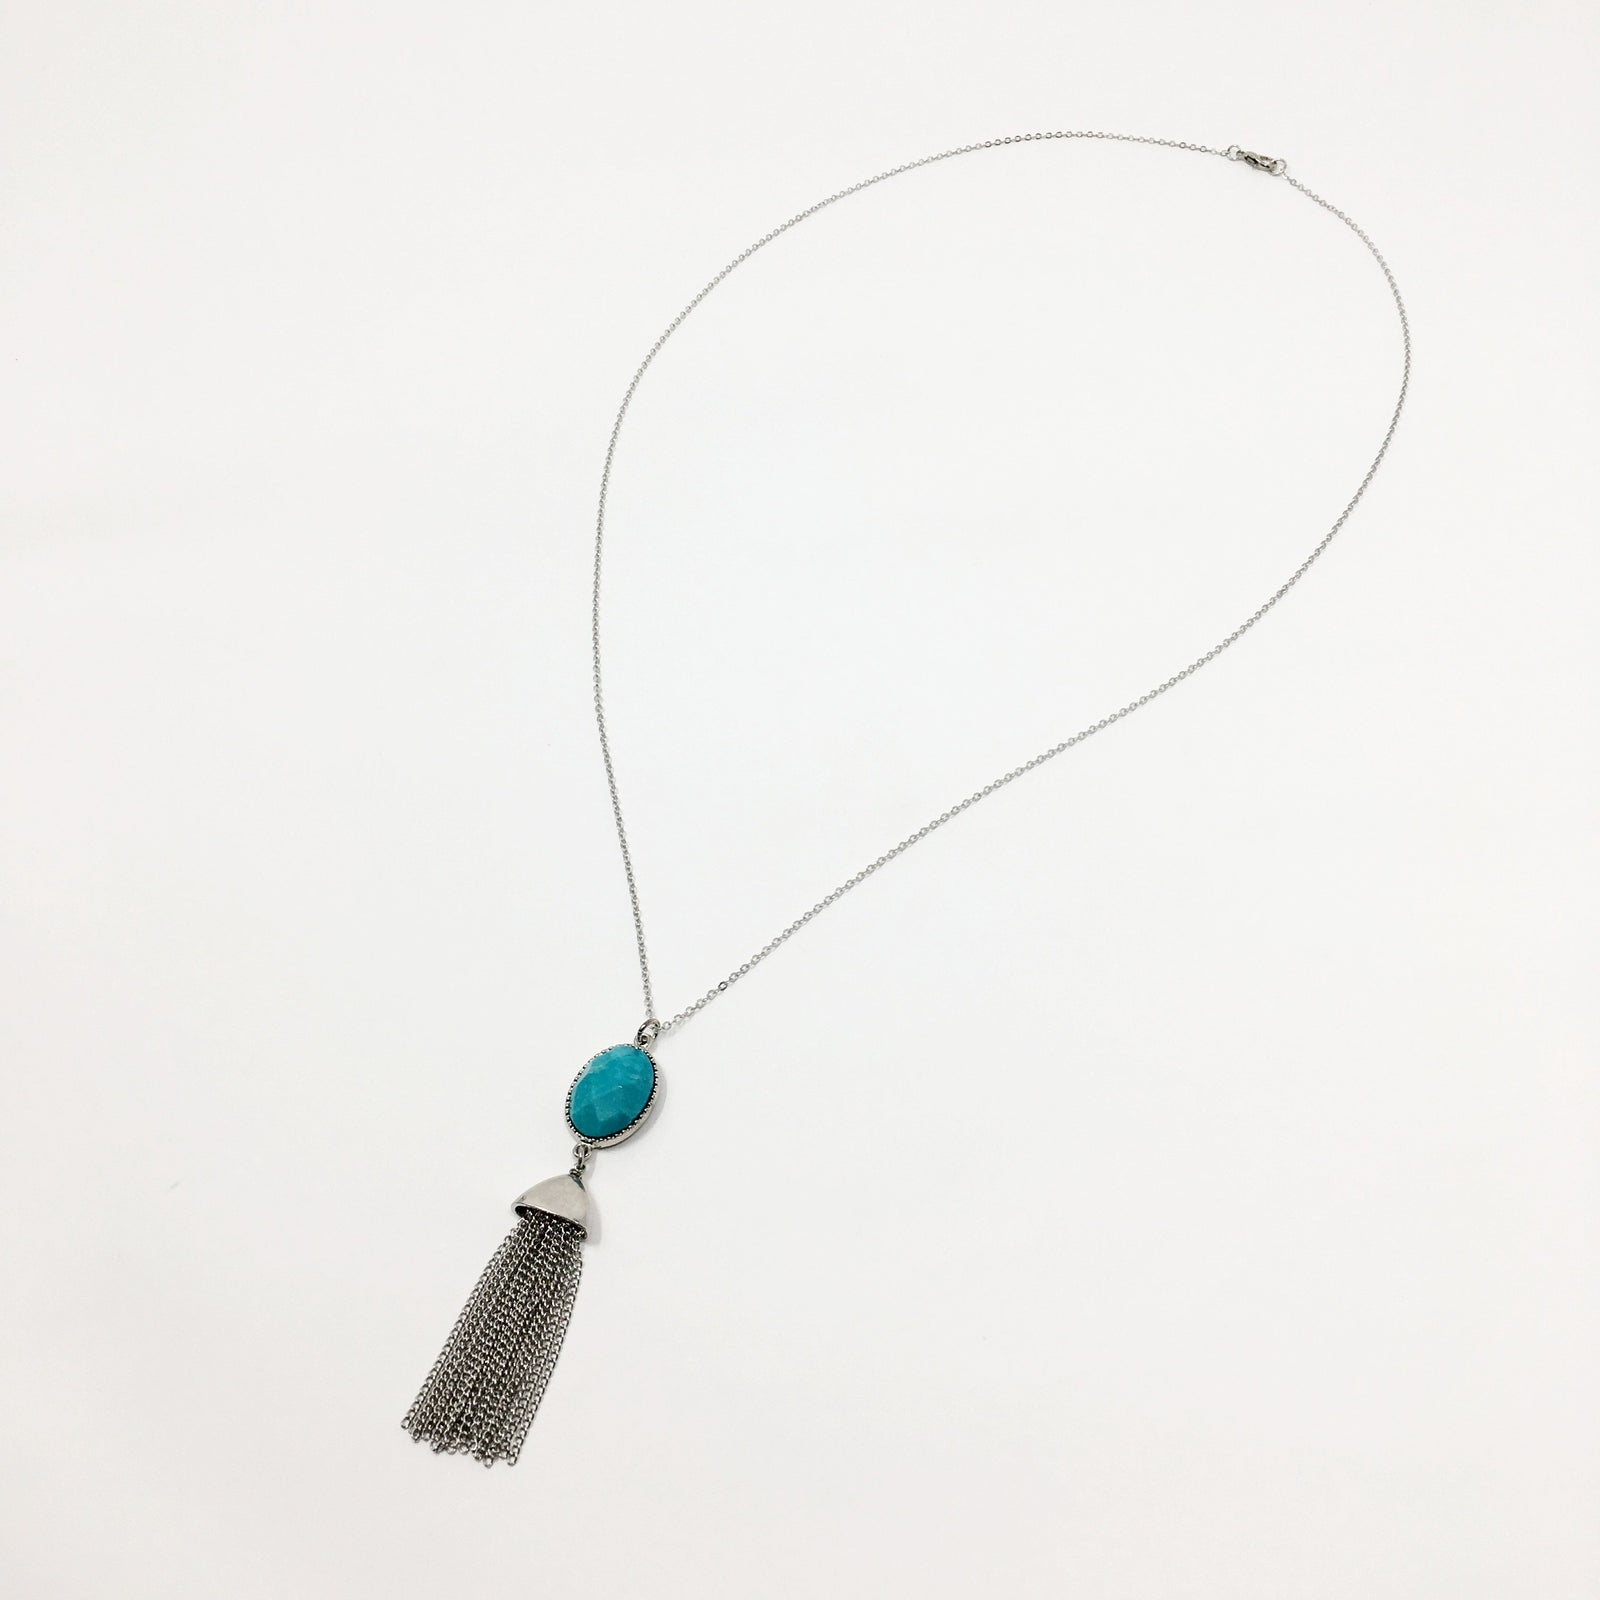 TURQUOISE HOWLITE AND SILVER CHAIN TASSEL NECKLACE